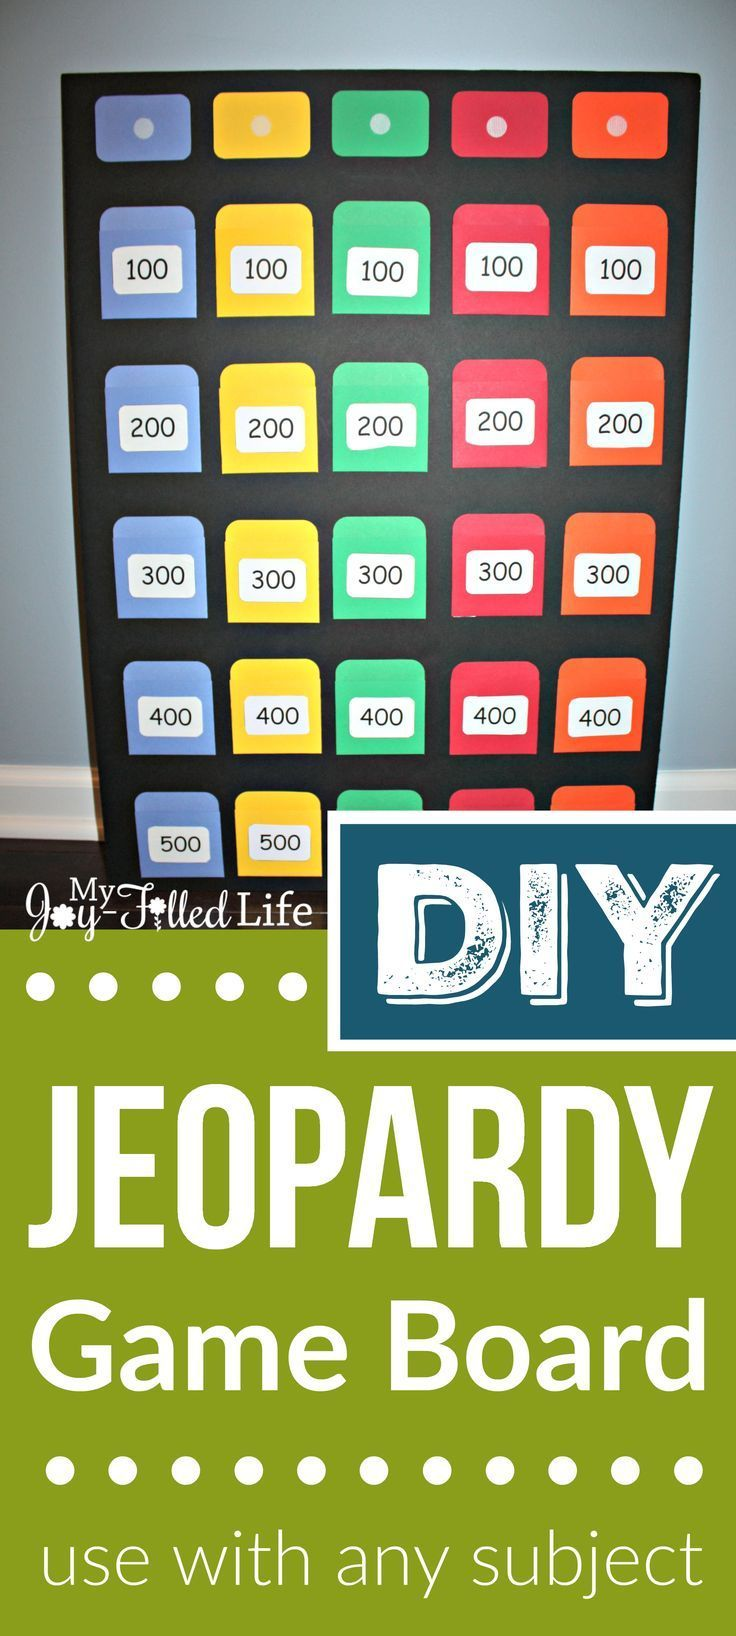 Diy Jeopardy Game Board Jeopardy Game Board Games Diy Family Games